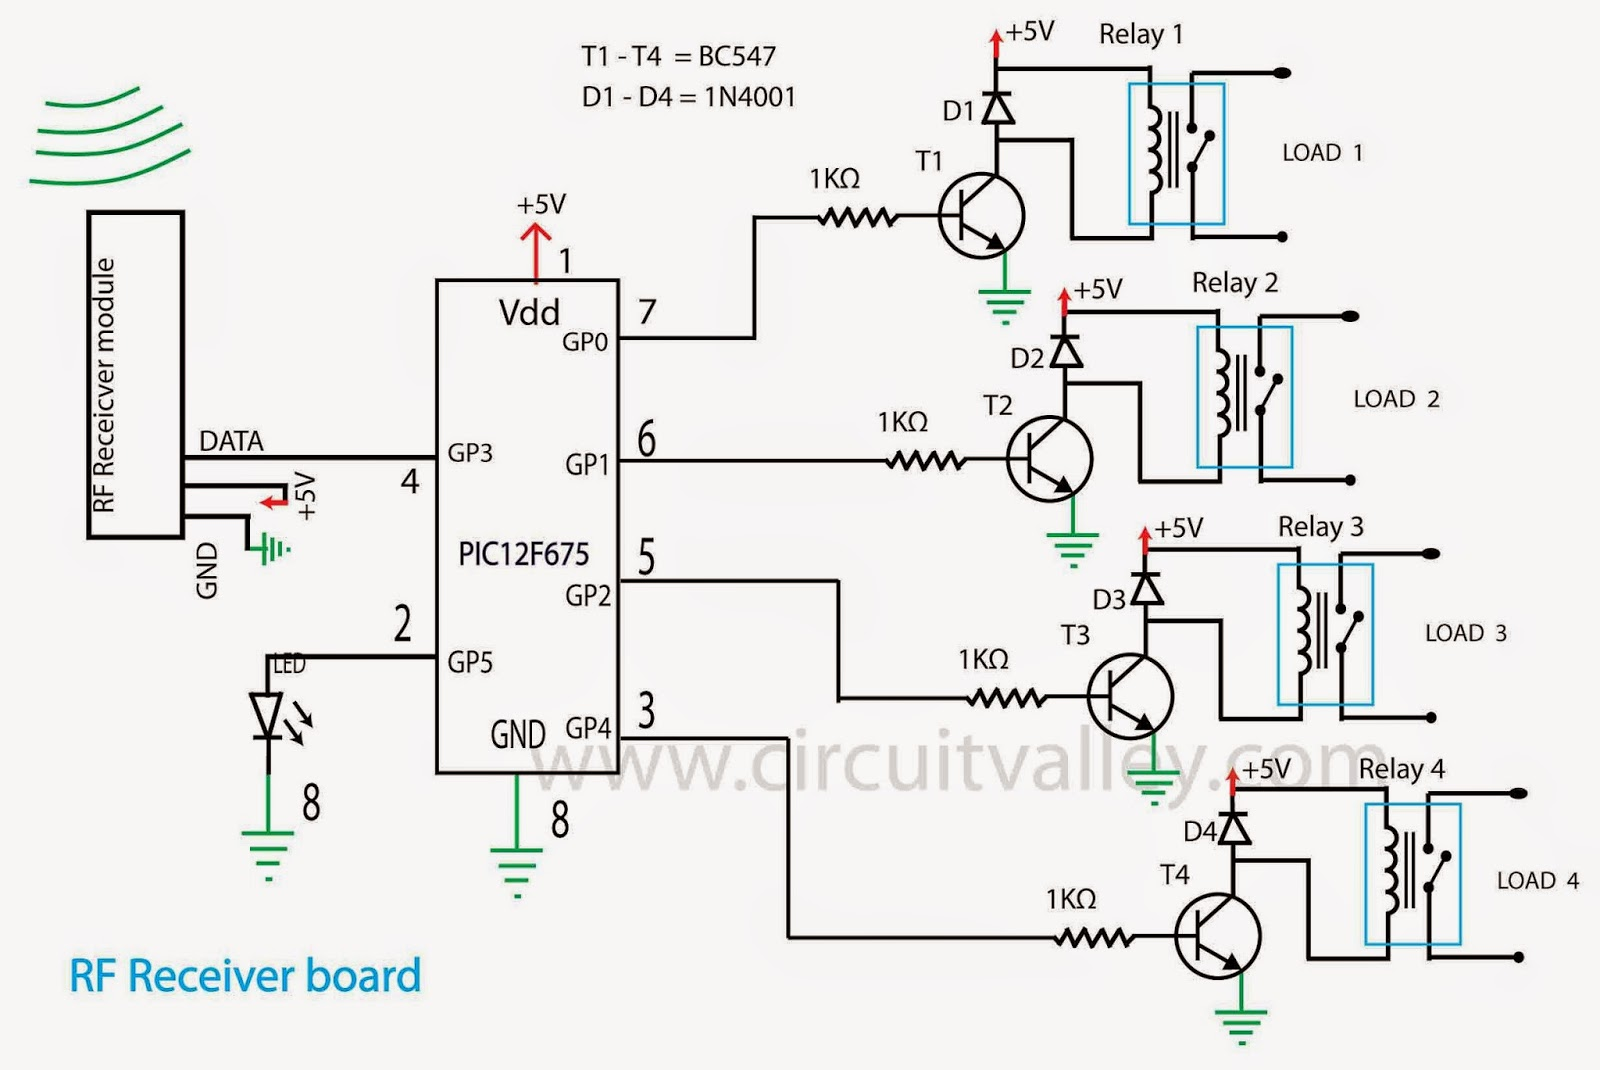 hight resolution of ch rf remote control auto electrical wiring diagram embedded engineering low cost rf control 4 channel